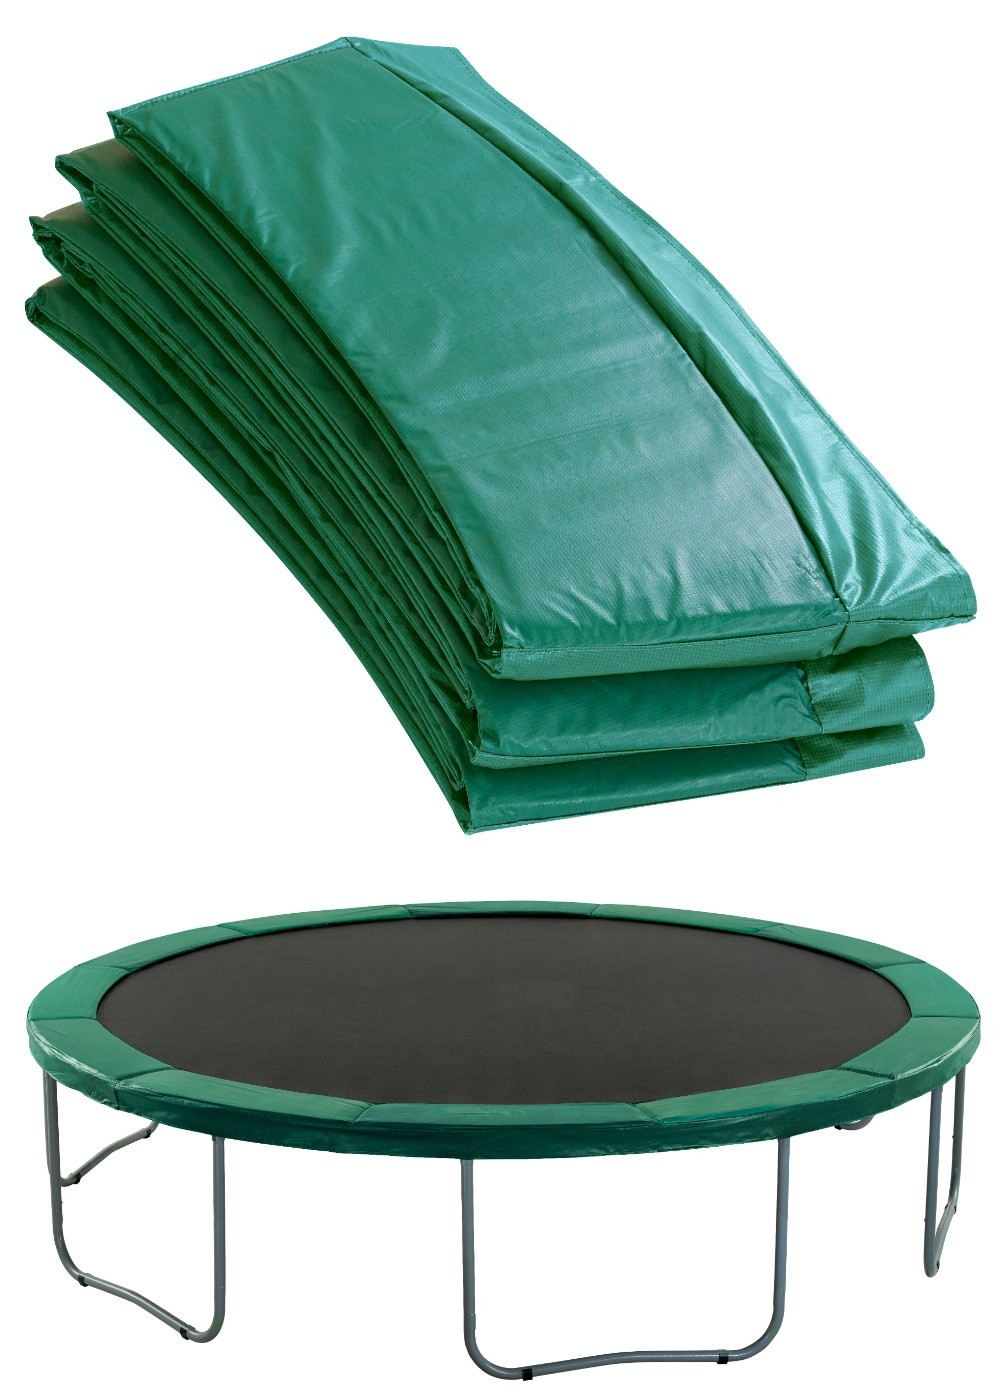 Super Trampoline Replacement Safety Pad (Spring Cover) Fits for 8 FT. Round Frames - Green